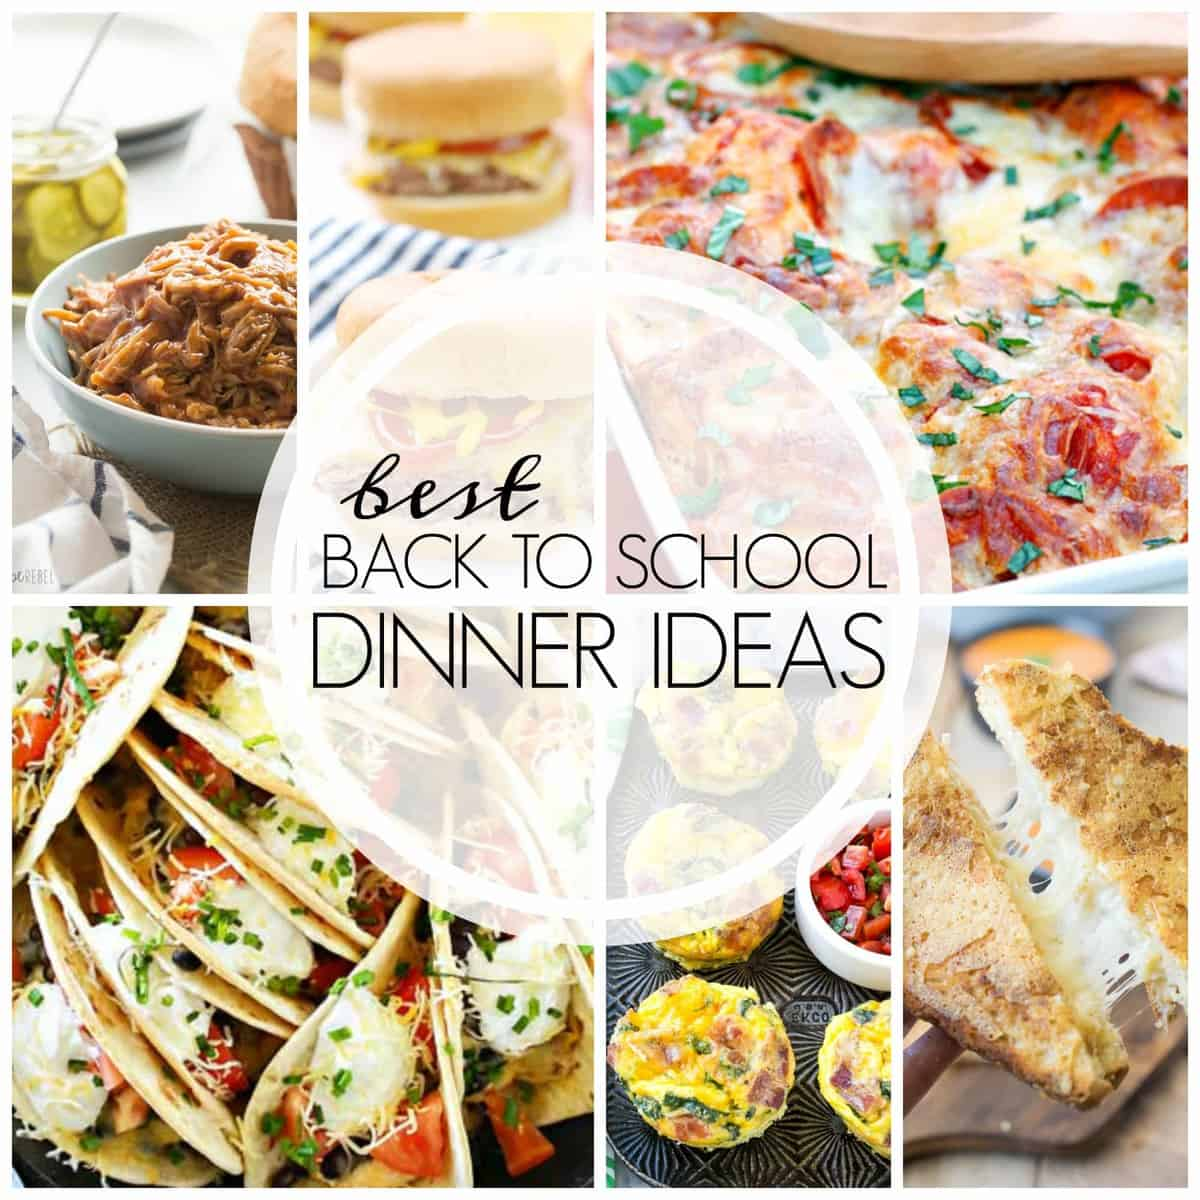 Easy Dinner Recipes: 20+ Family Friendly Ideas | Self Proclaimed Foodie